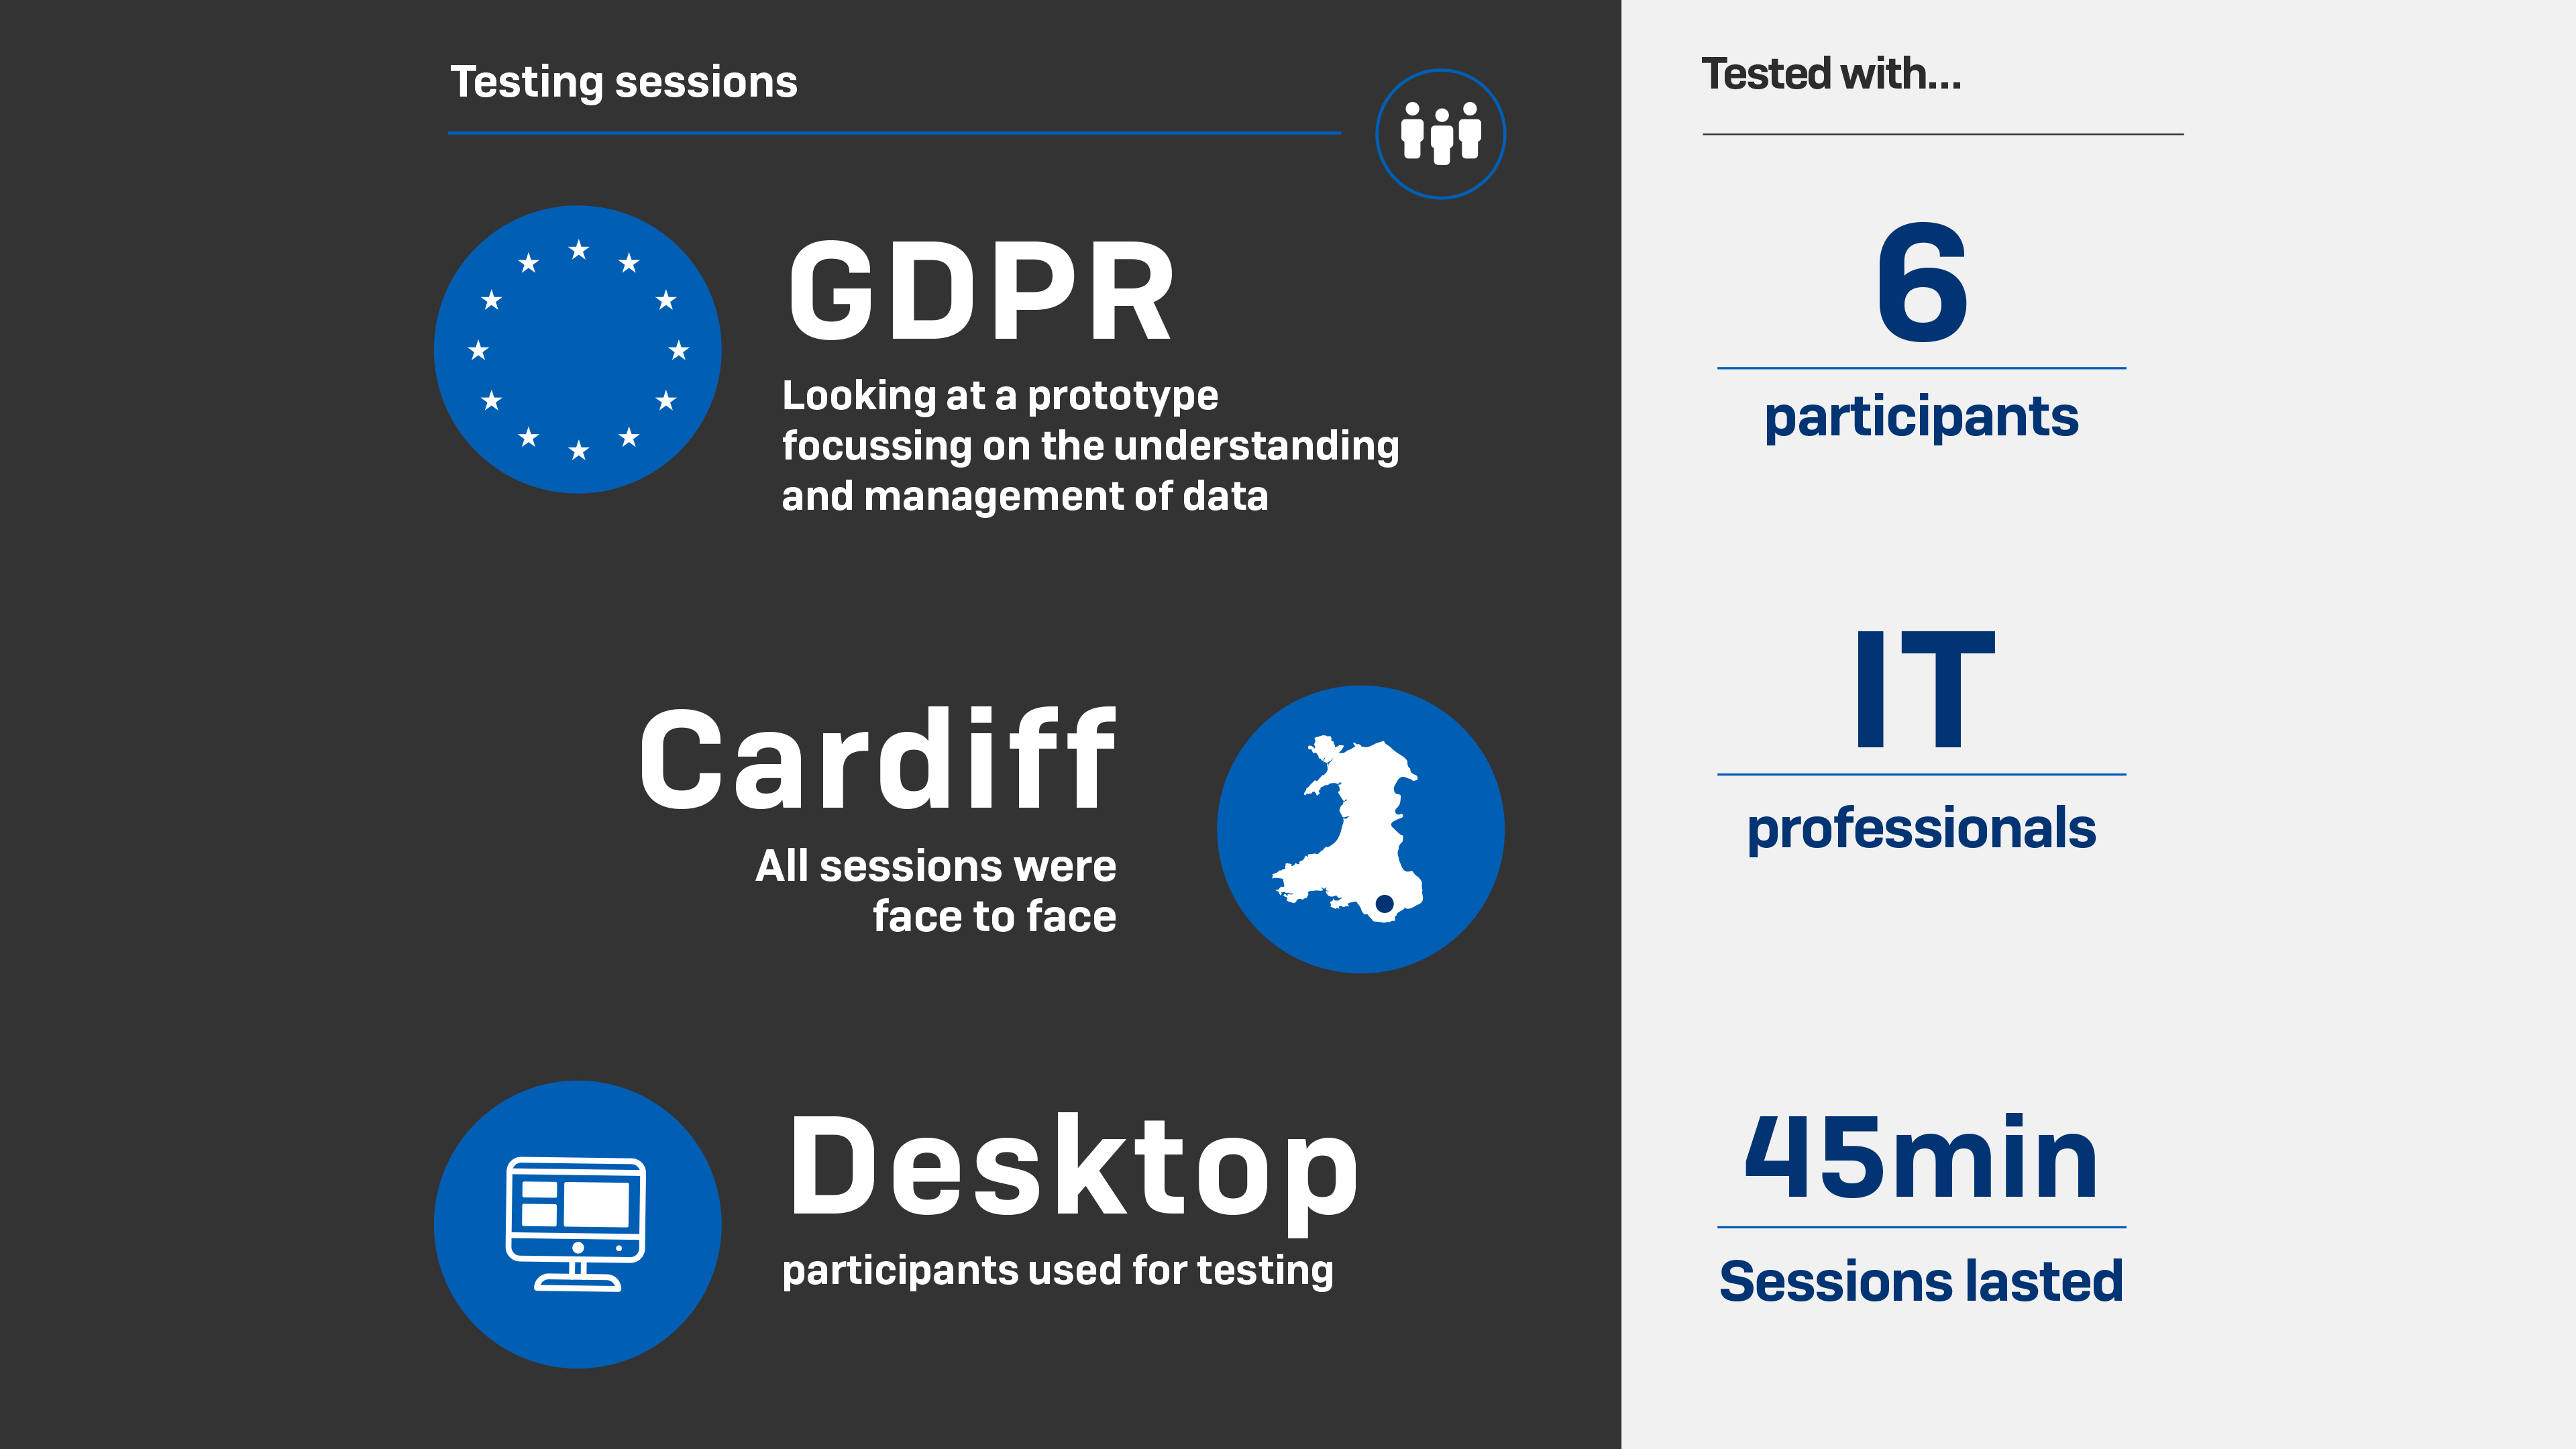 Poster for Sophos testing sessions